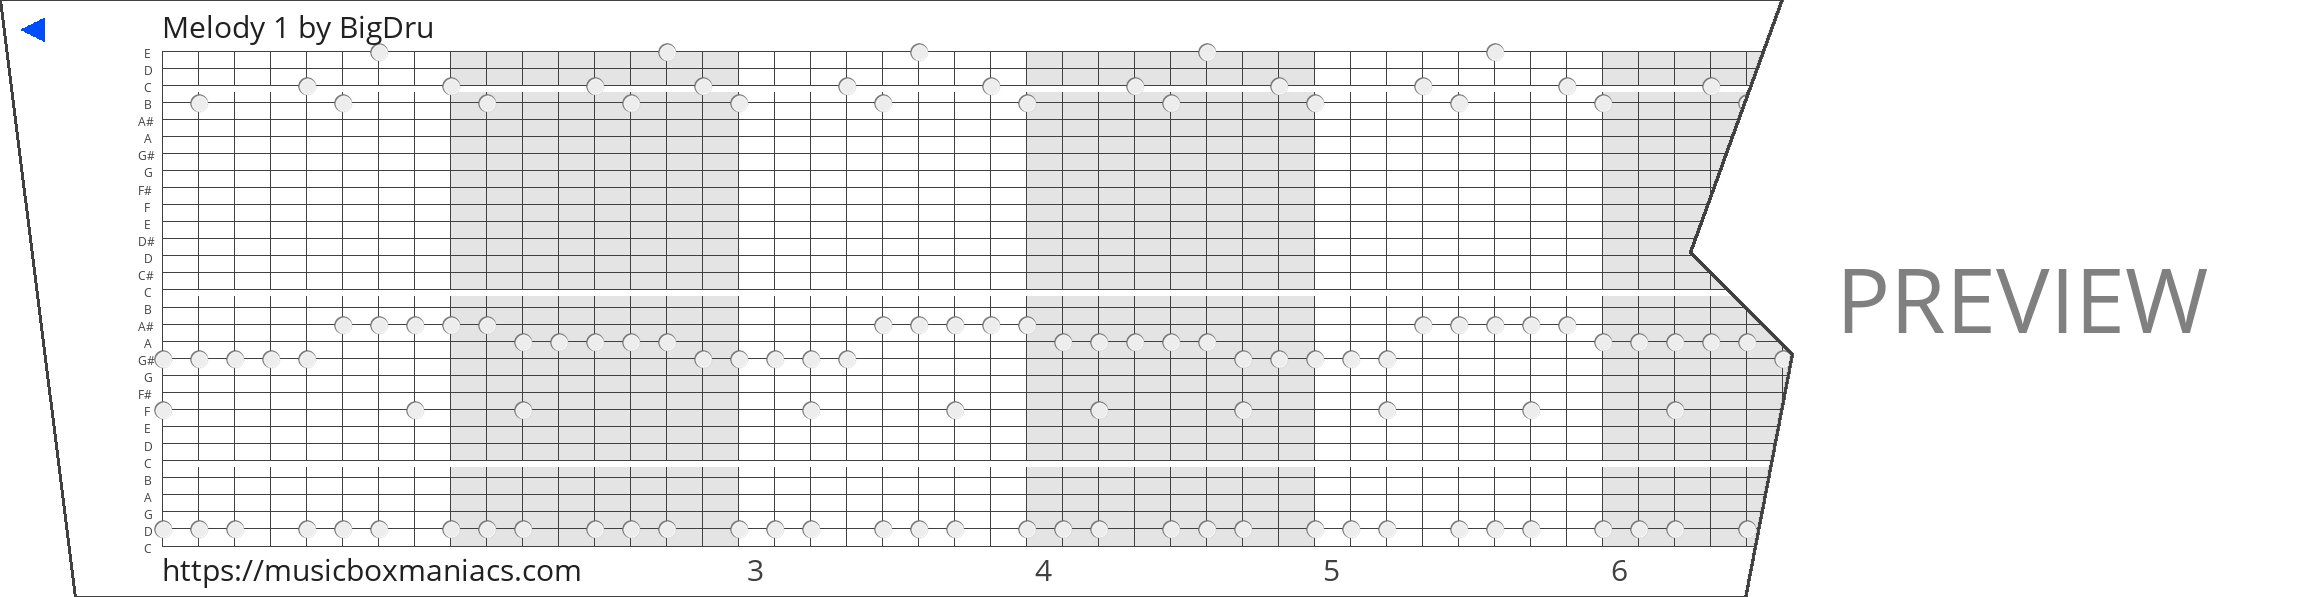 Melody 1 30 note music box paper strip